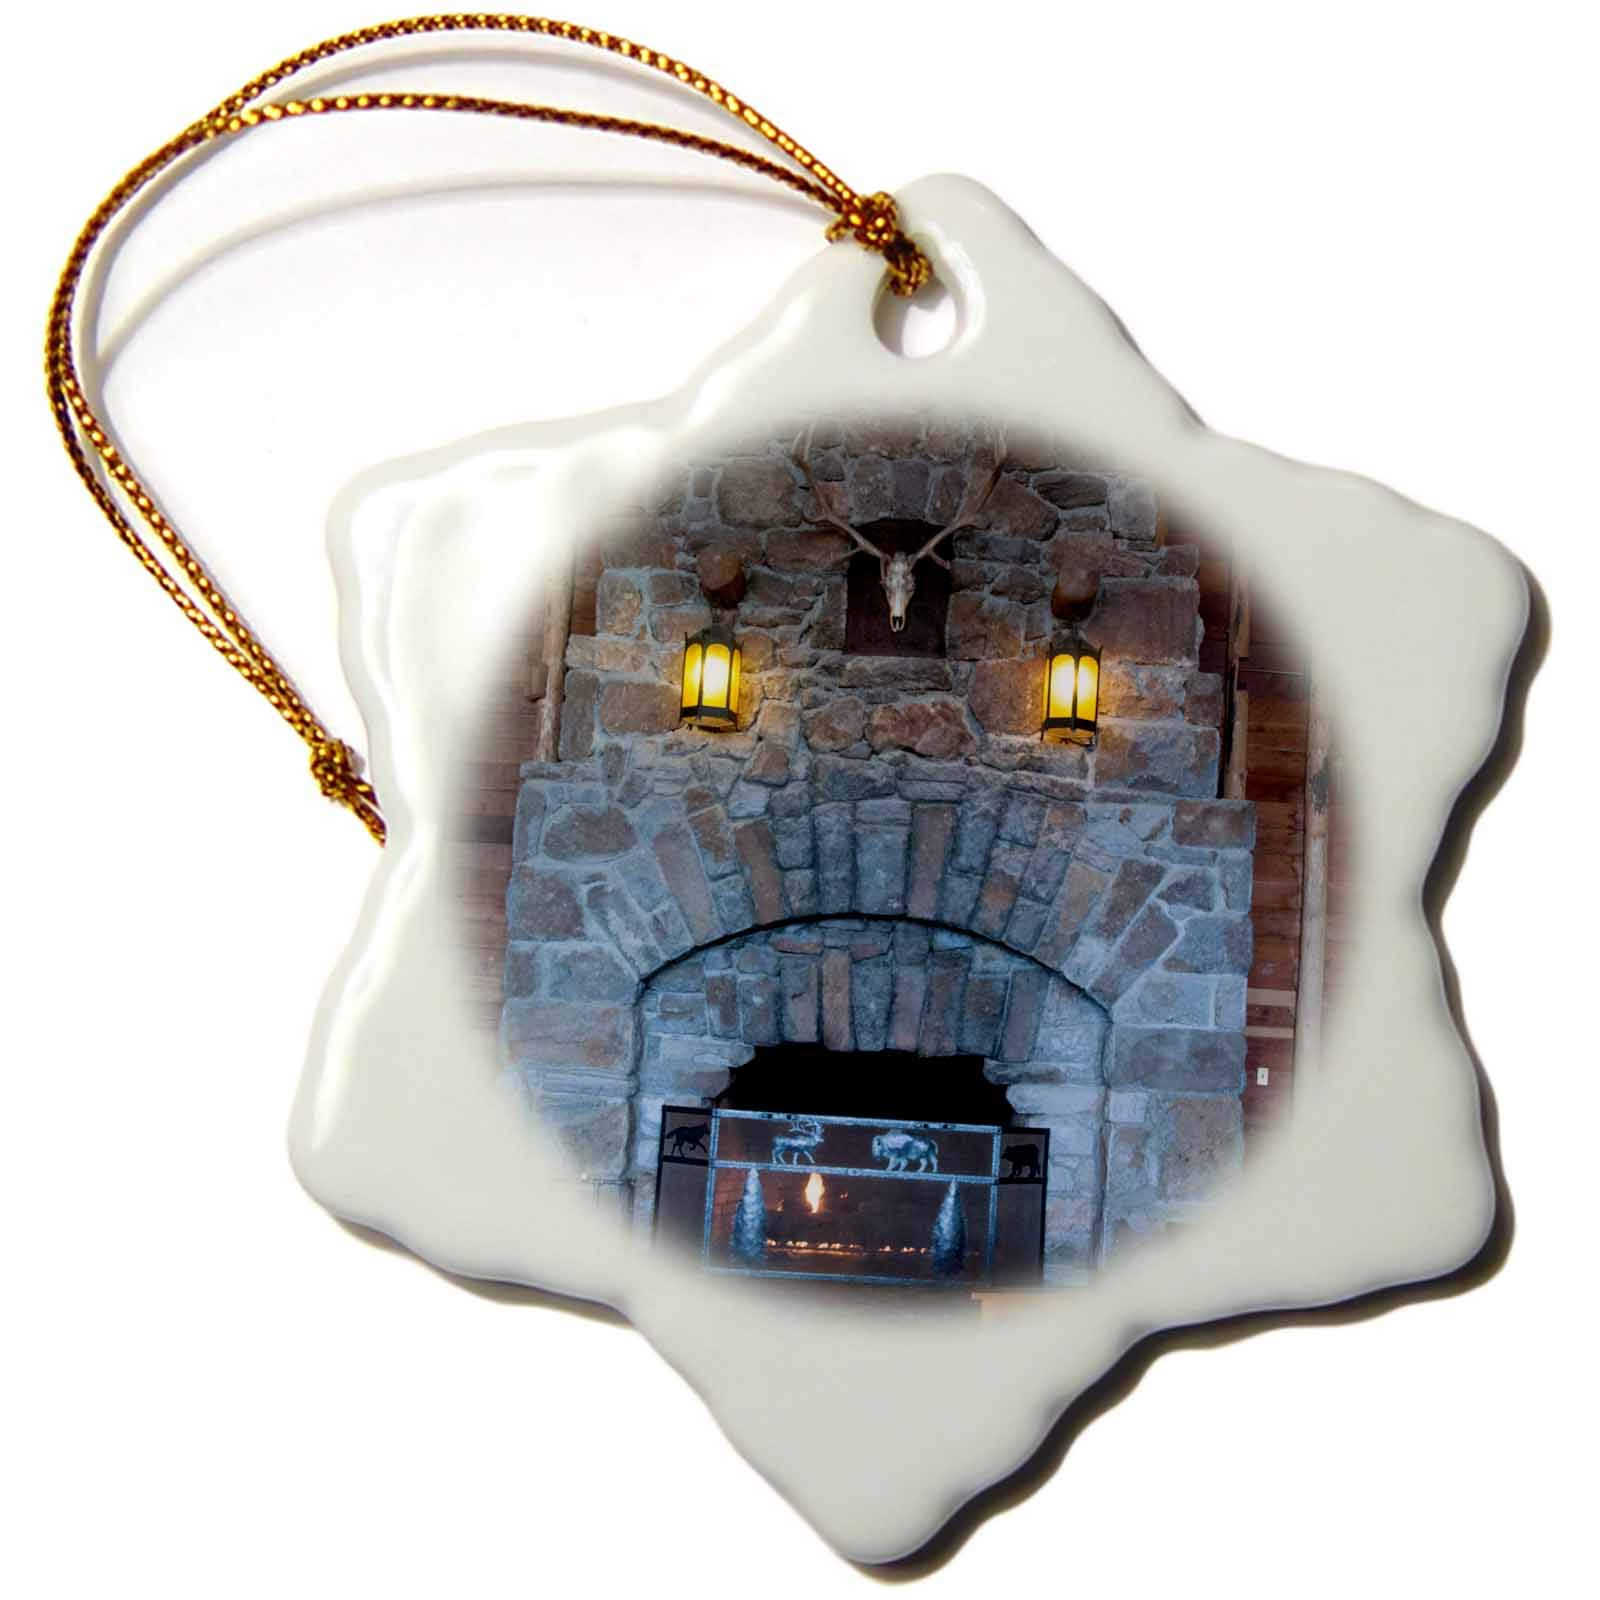 3dRose Jos Fauxtographee- Yellowstone Fireplace - The Yellowstone Hotel with The Huge Fireplace of Brick - 3 inch Snowflake Porcelain Ornament (ORN_293356_1)